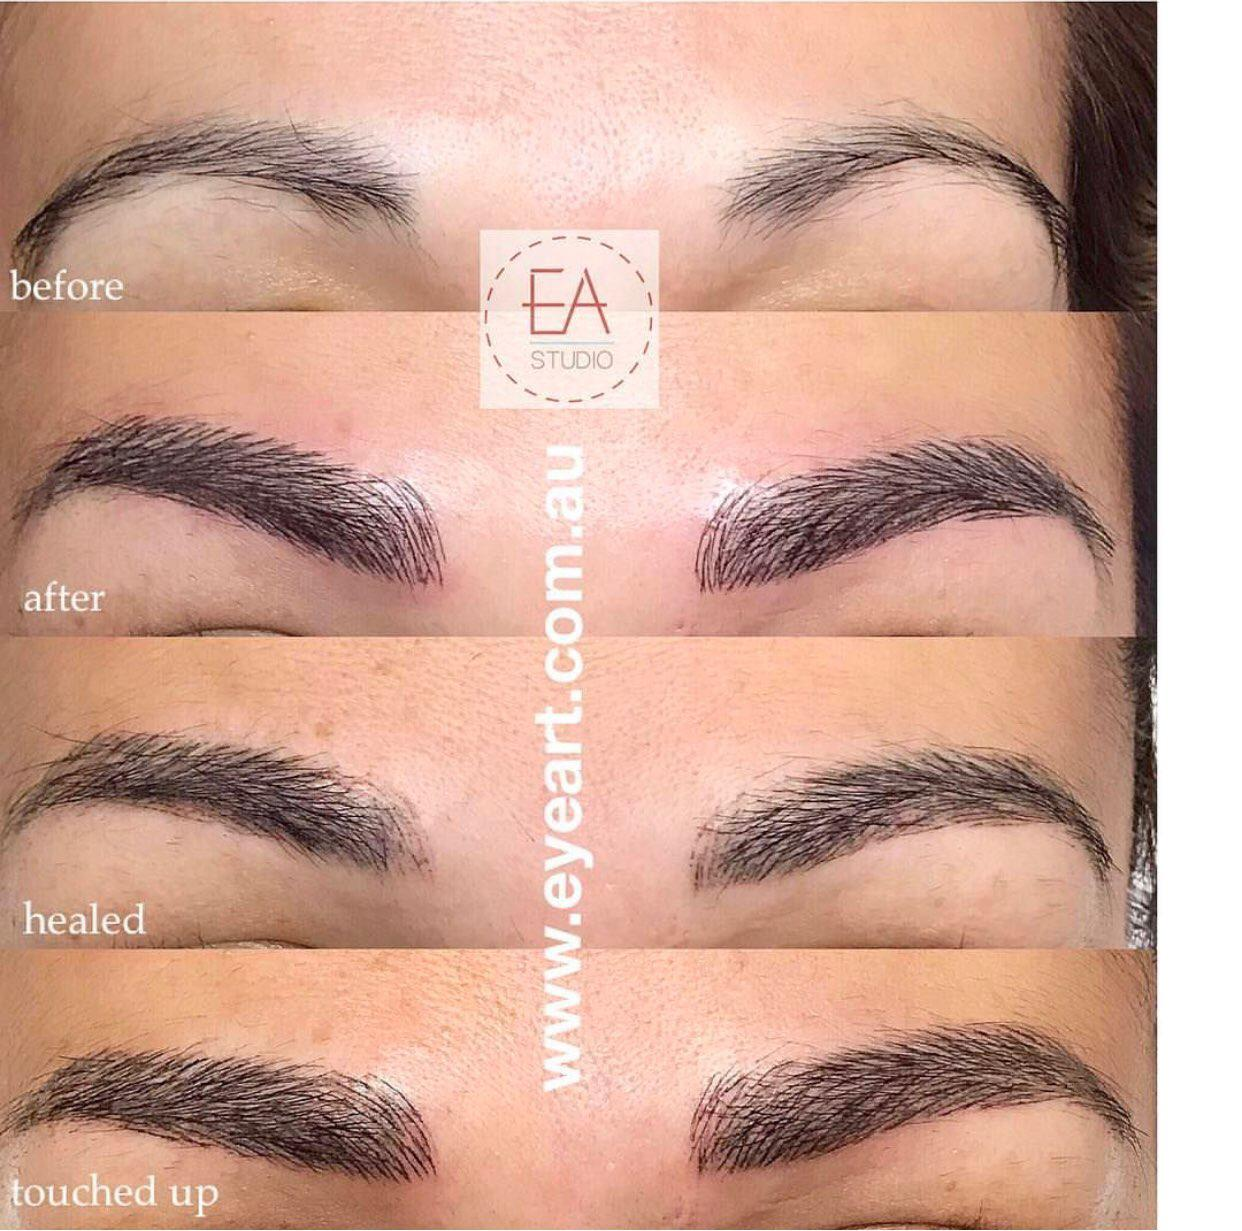 Eyebrow Microblading Before and After Photos Eye Art Studio